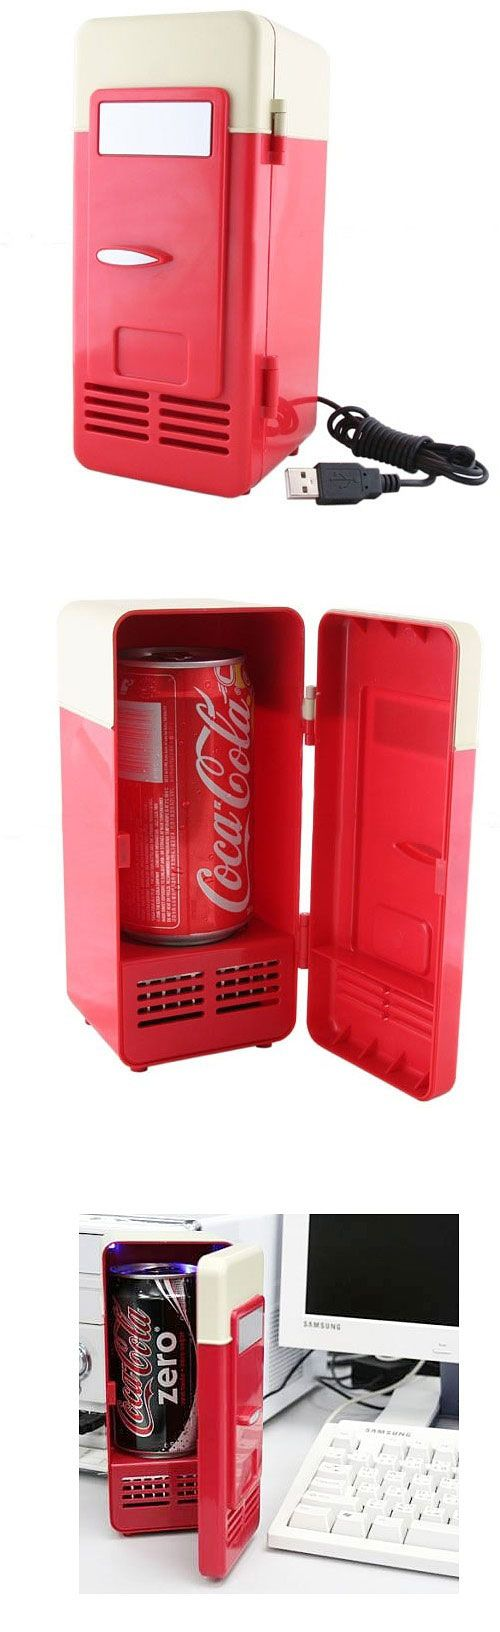 USB Refrigerator...Shut up and take my money!